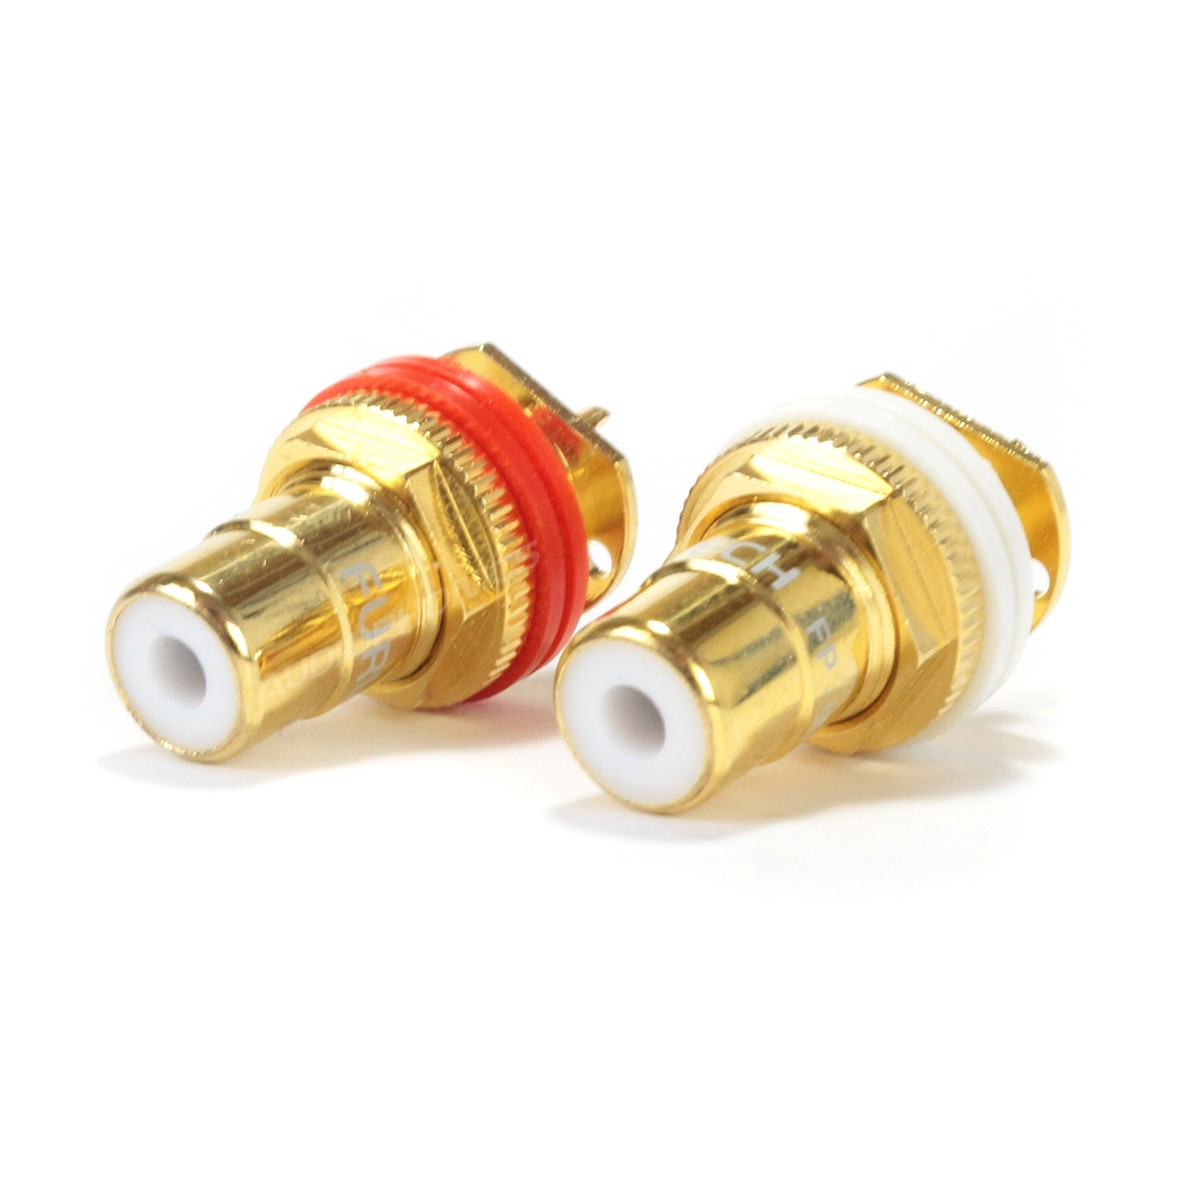 FURUTECH FP-900 (G) Gold Plated RCA Plugs (Pair)